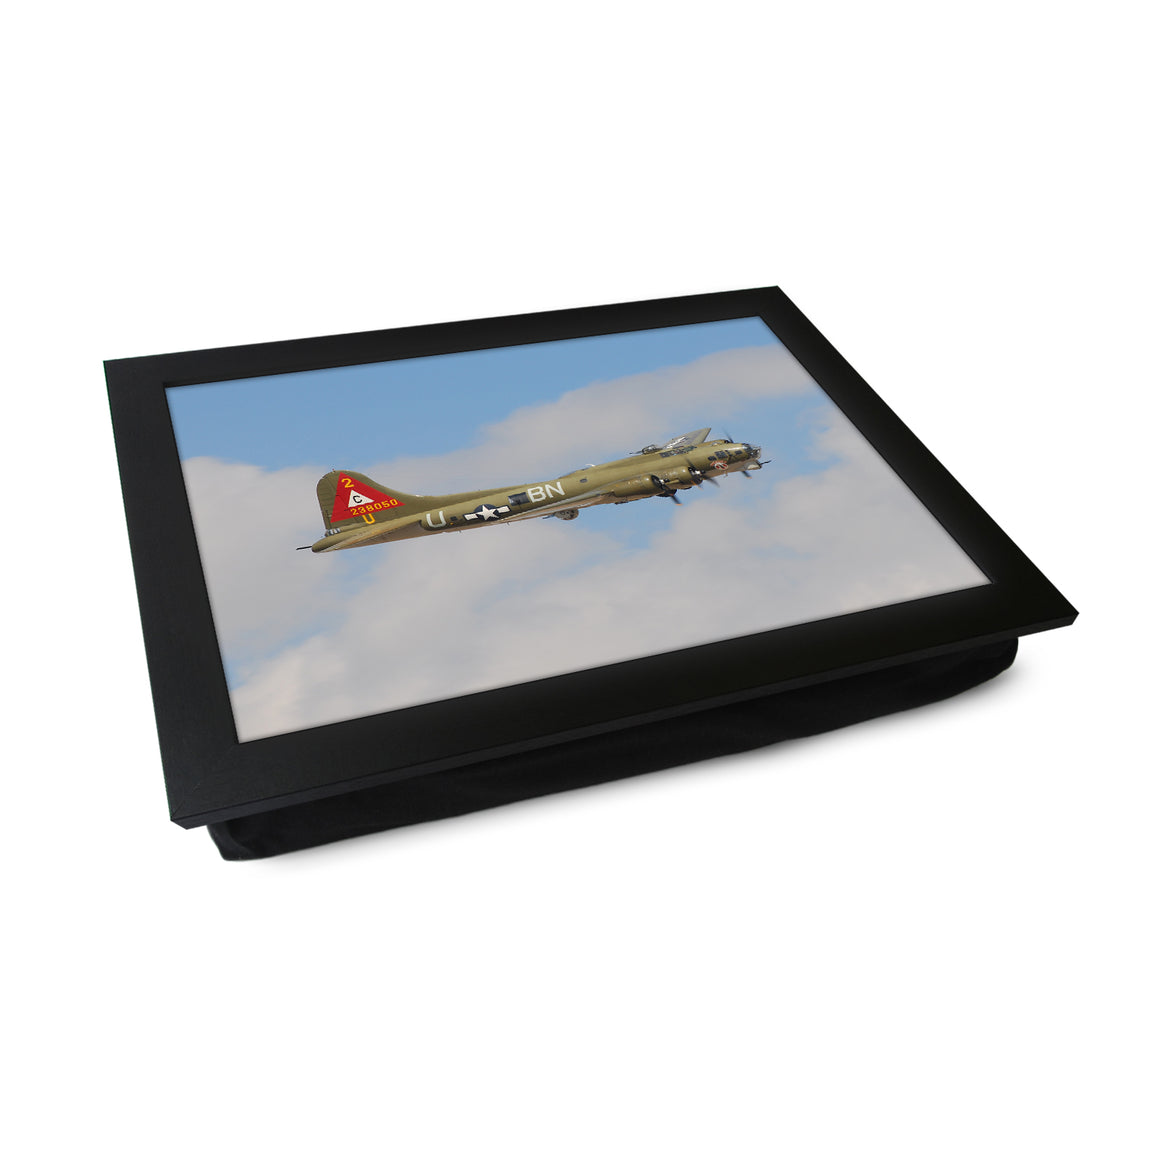 Boeing B-17 Flying Fortress Plane Lap Tray - AD12509